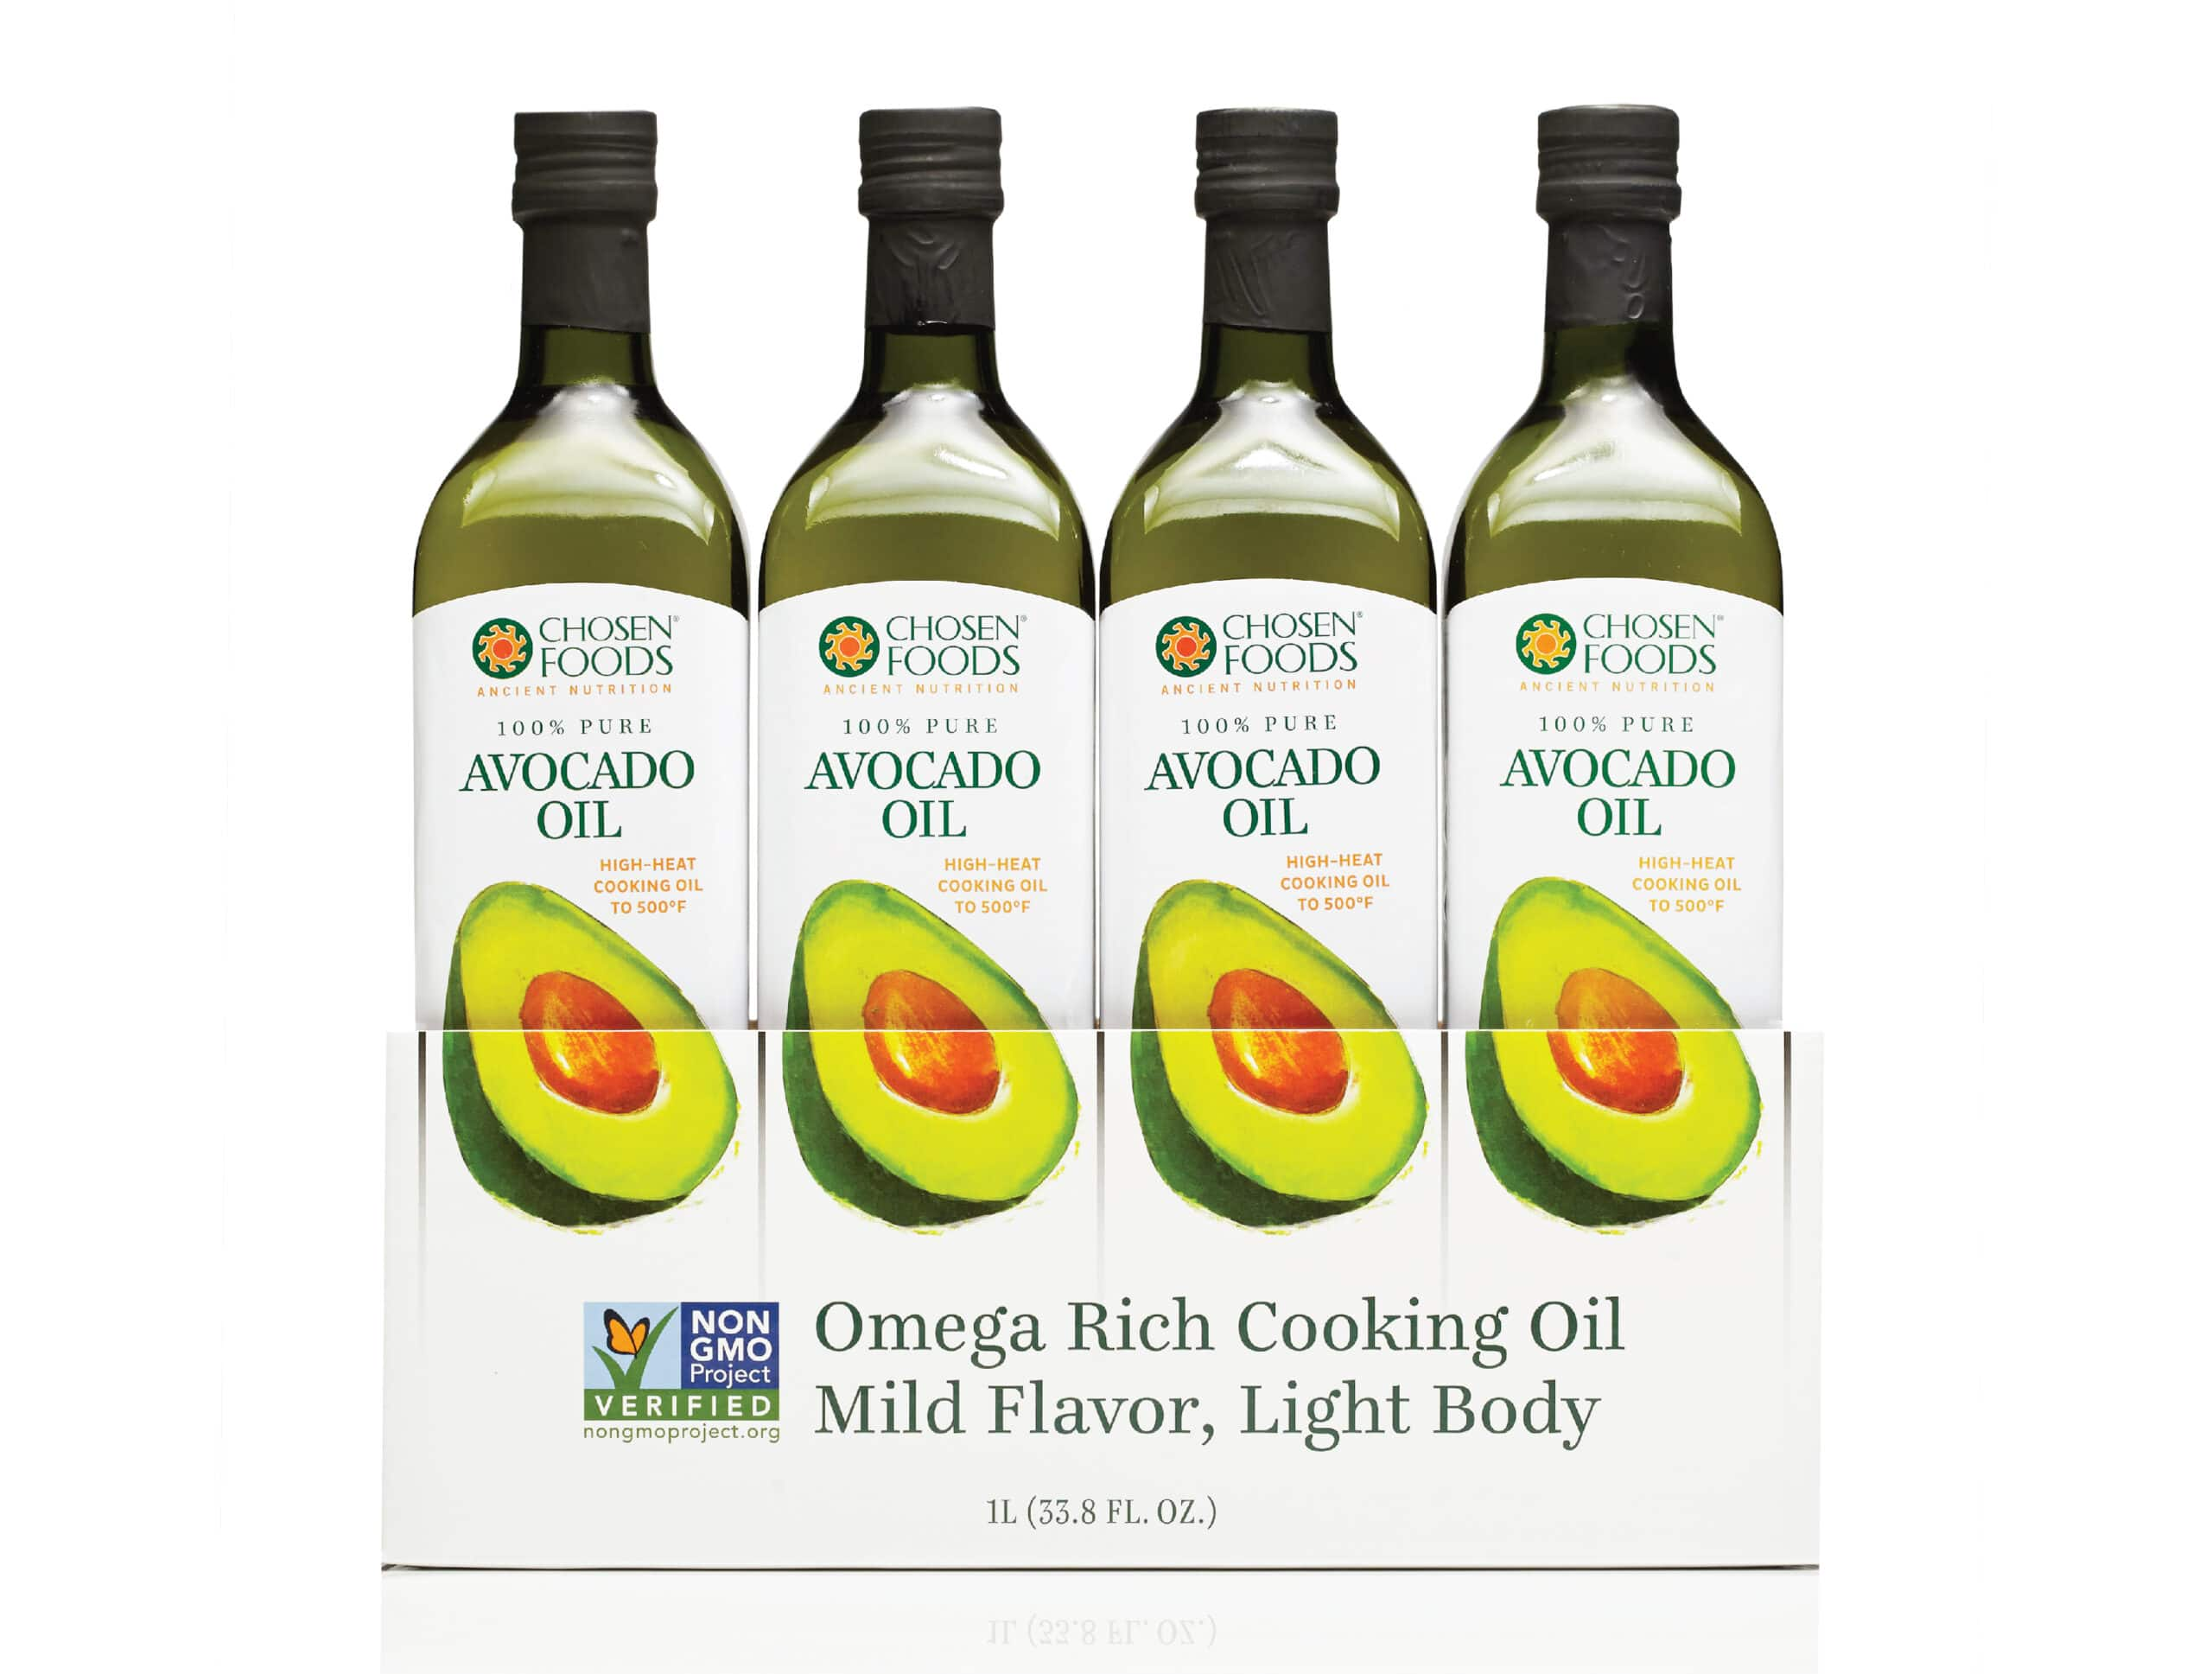 Avocado Oil Packaging Design